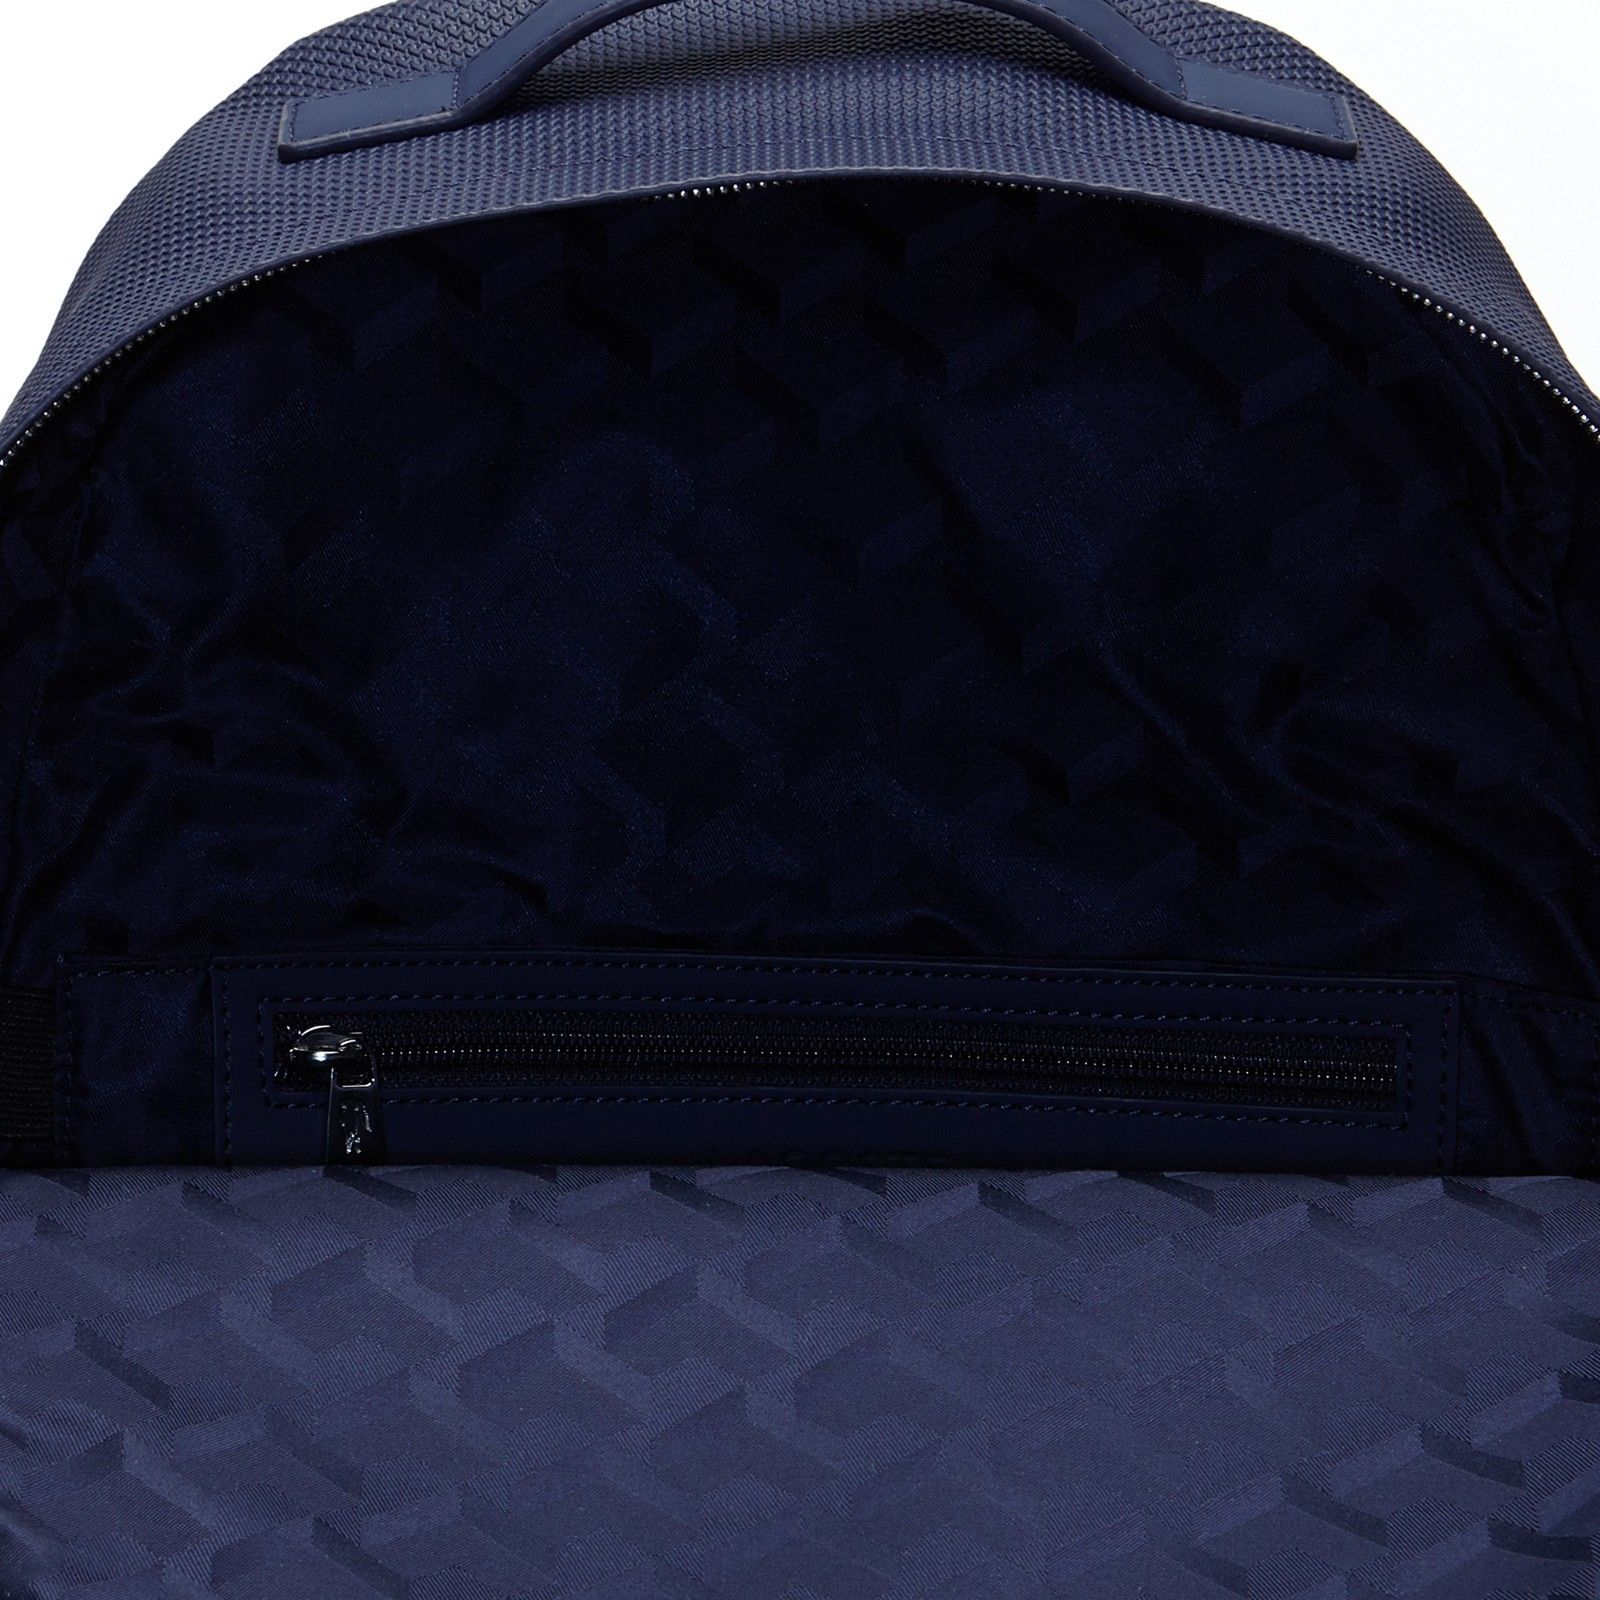 NEW MEN/'S LACOSTE CHANTACO EMBROIDERY COATED LEATHER NAVY BLUE BACKPACK BAG